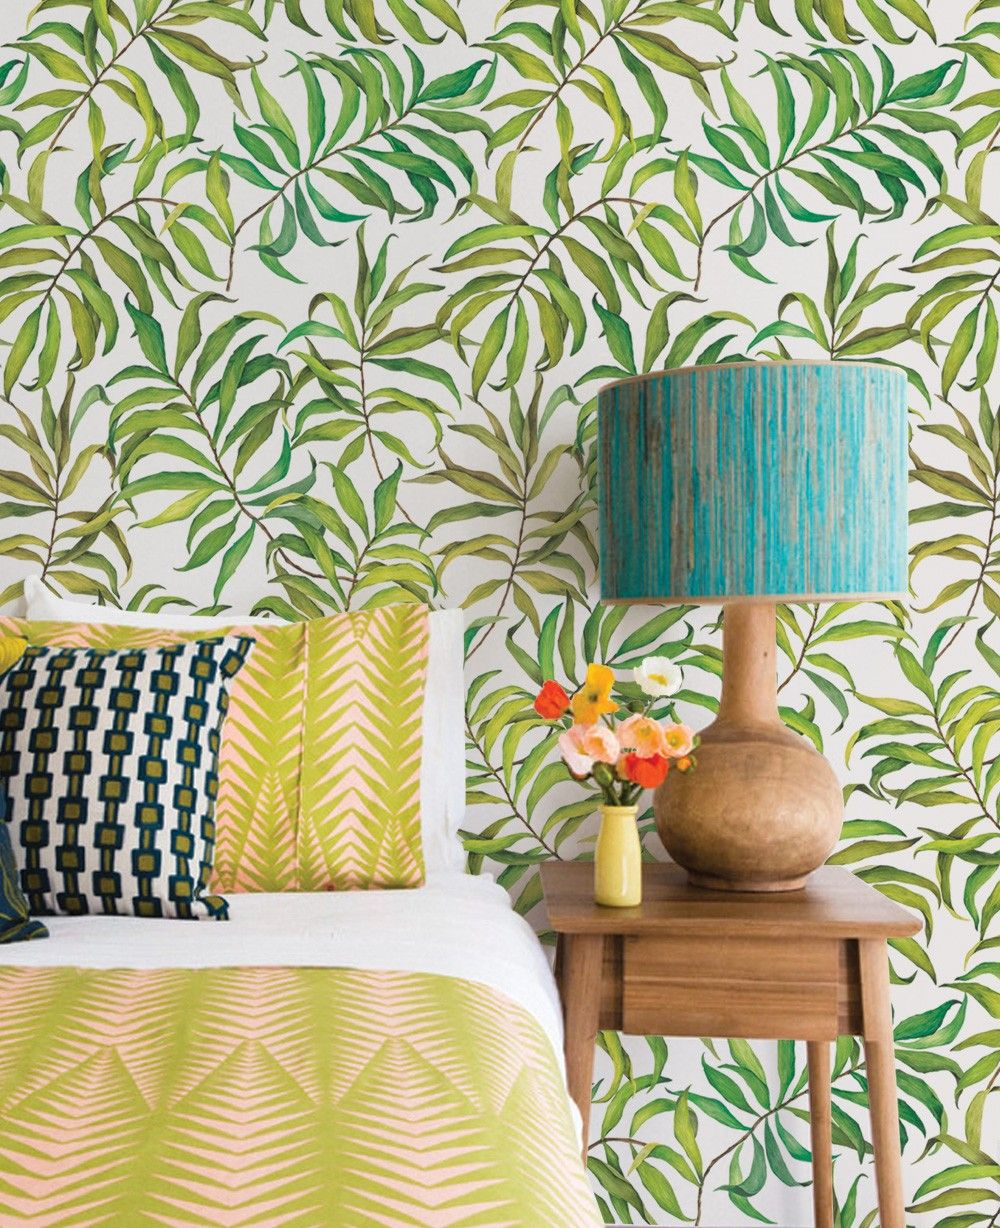 Tropical Leaves Wallpaper Peel and Stick Home decor